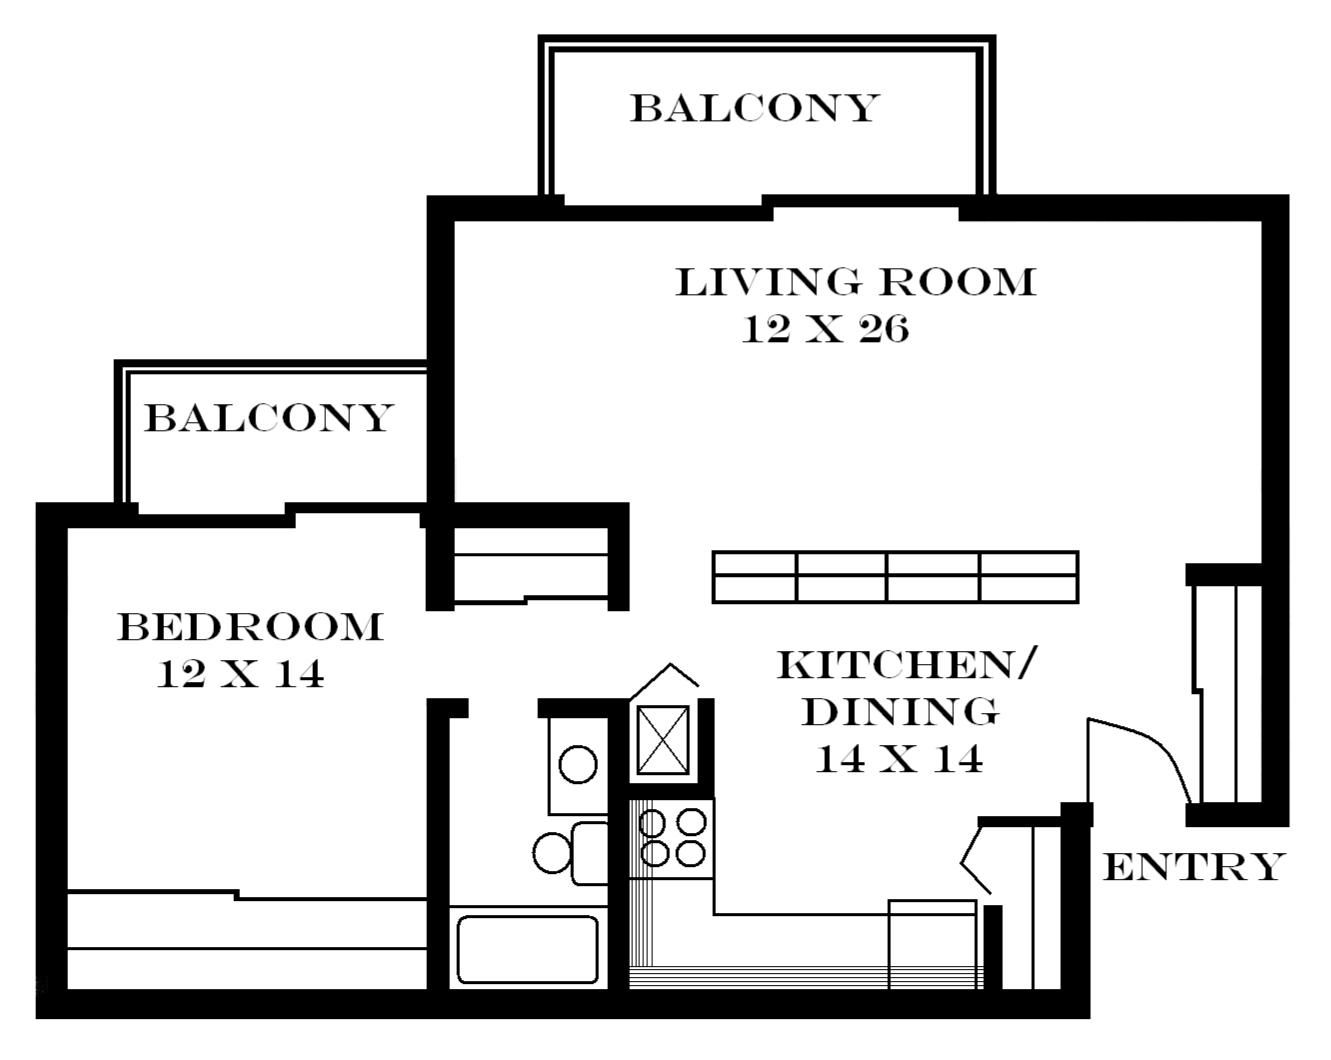 I Also Really Like This Floor Plan Because The Kitchen And Living Room Are Sort Of